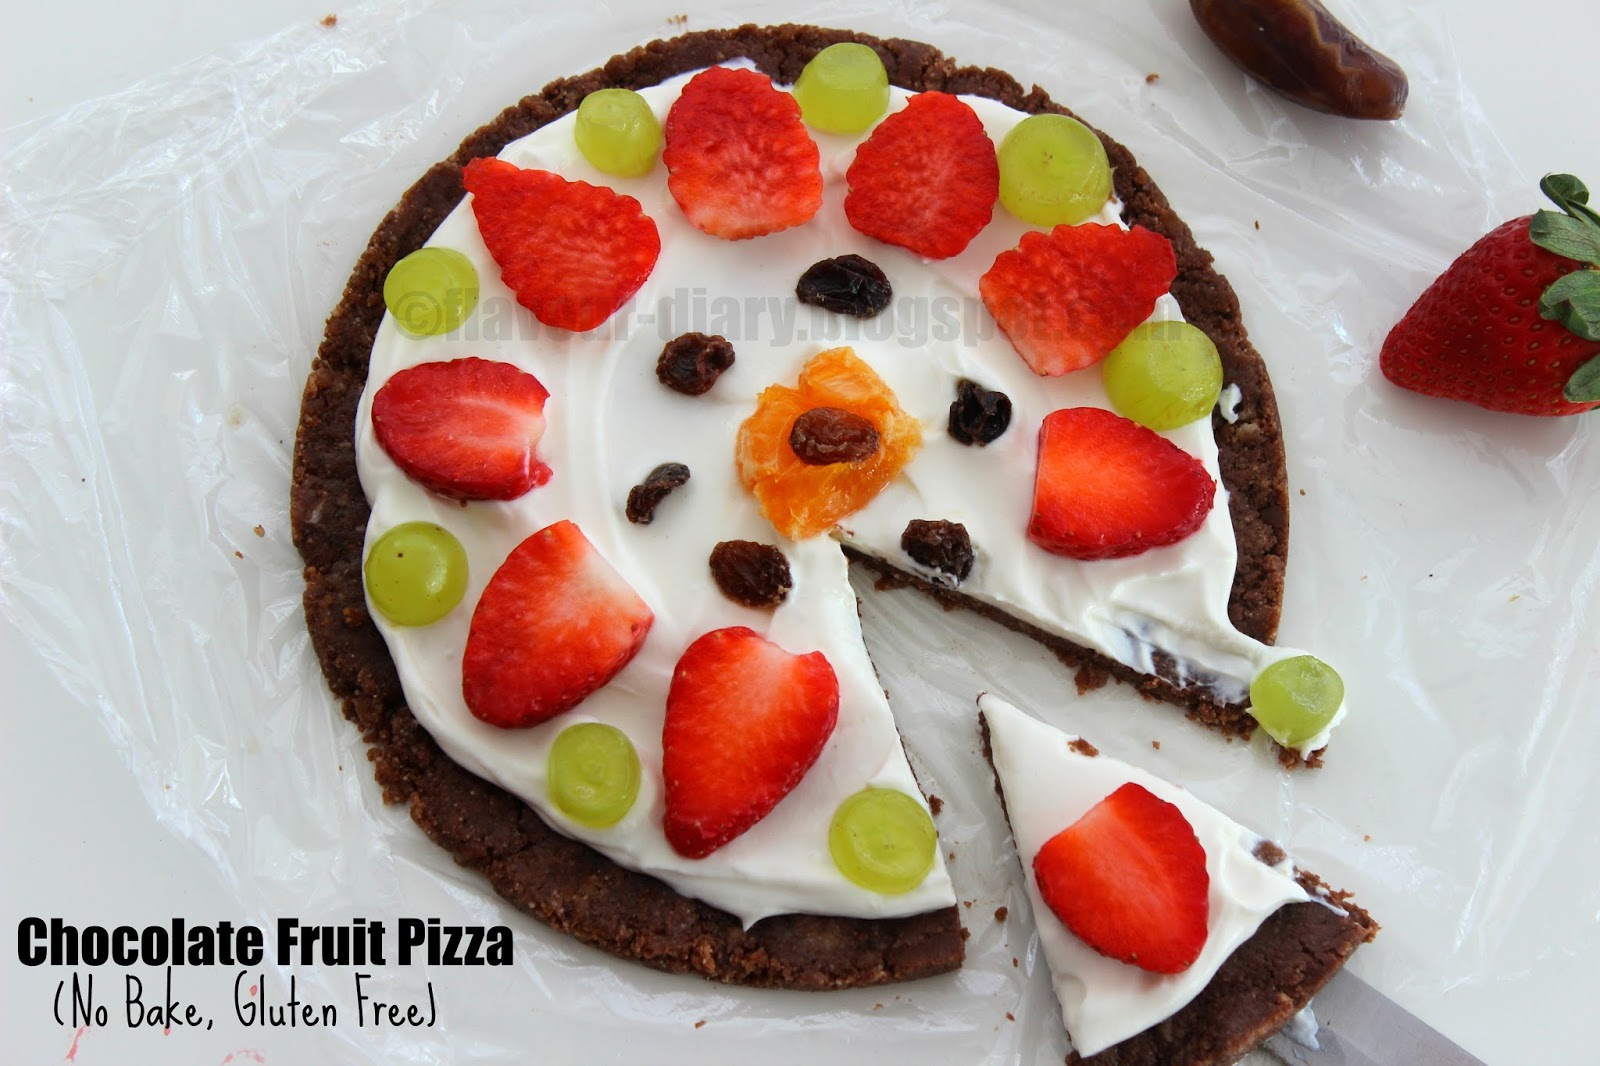 No Bake Chocolate Fruit Pizza Recipe